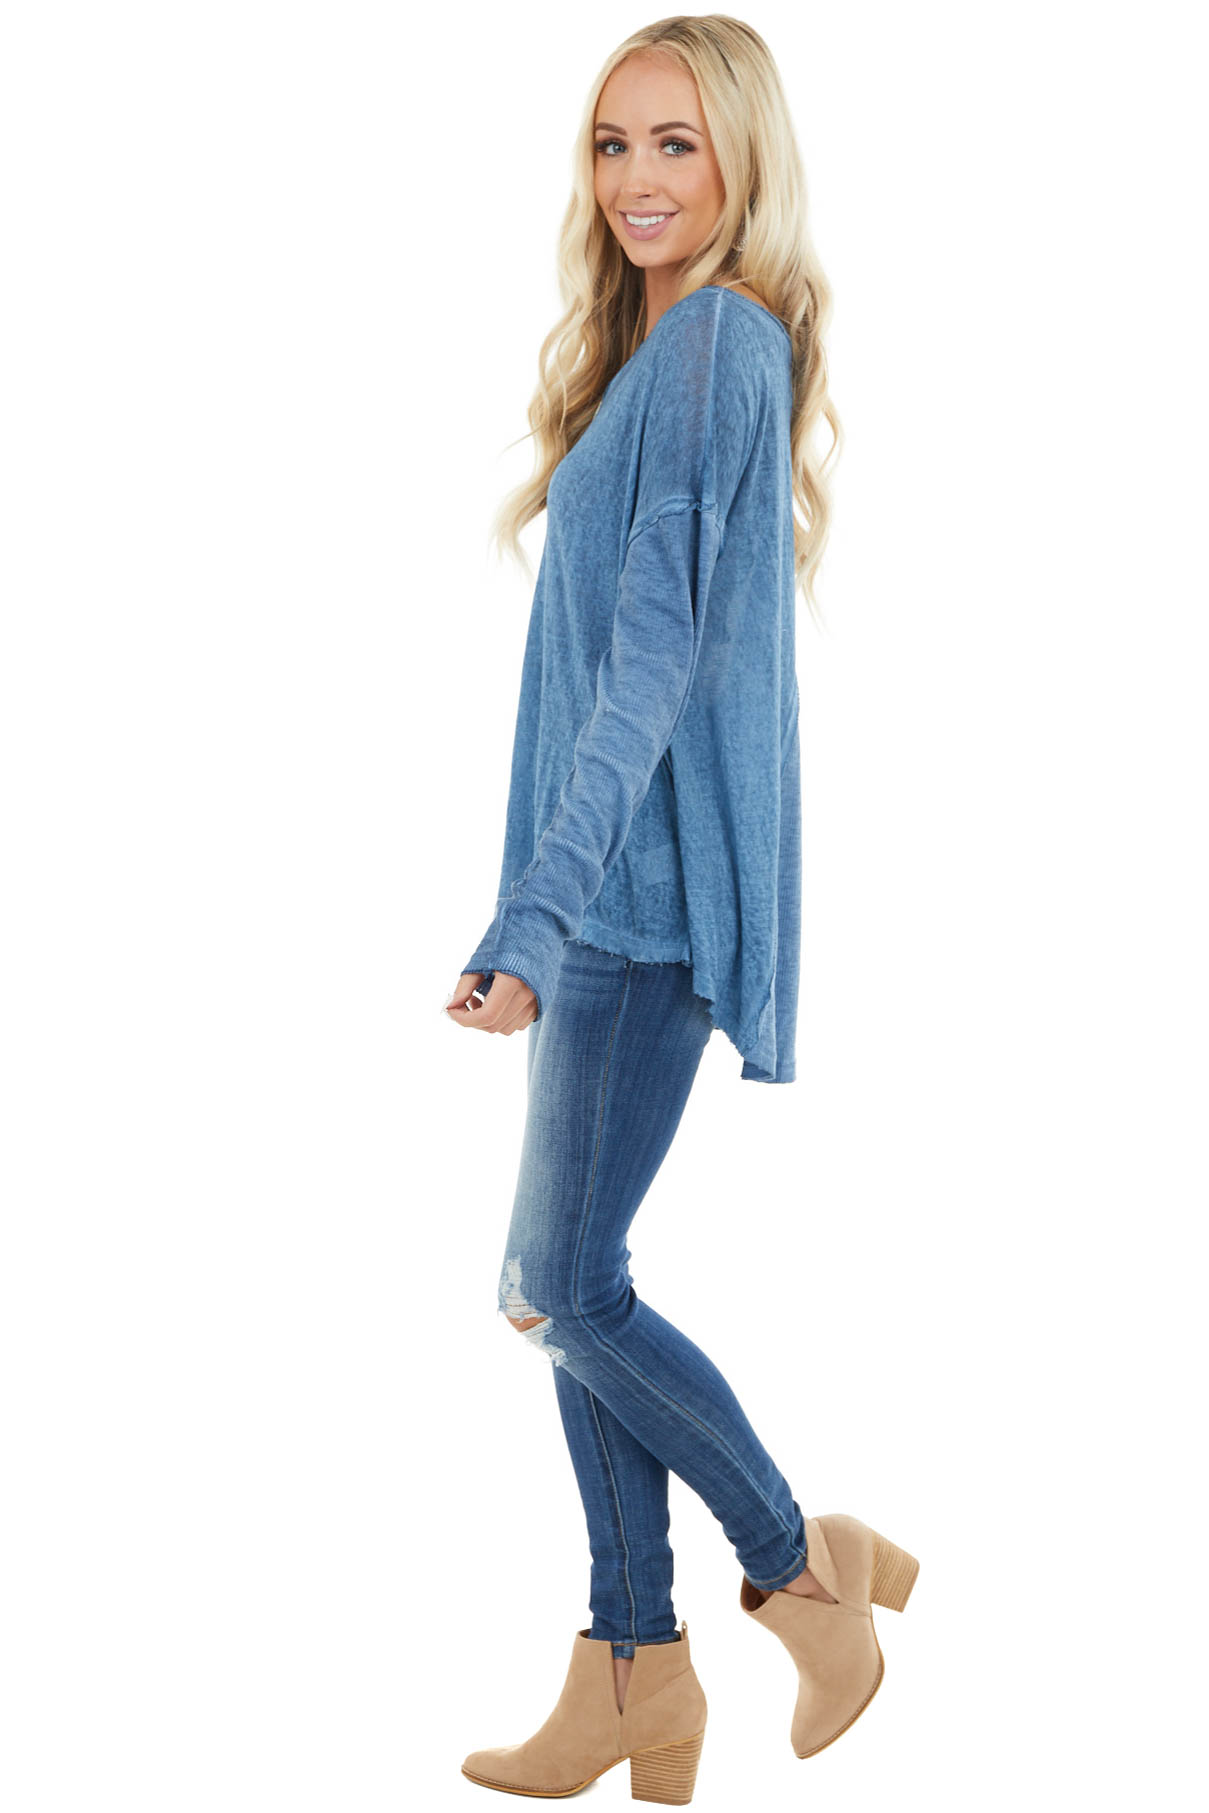 Heathered Blue Knit Top with Ribbed Knit Details